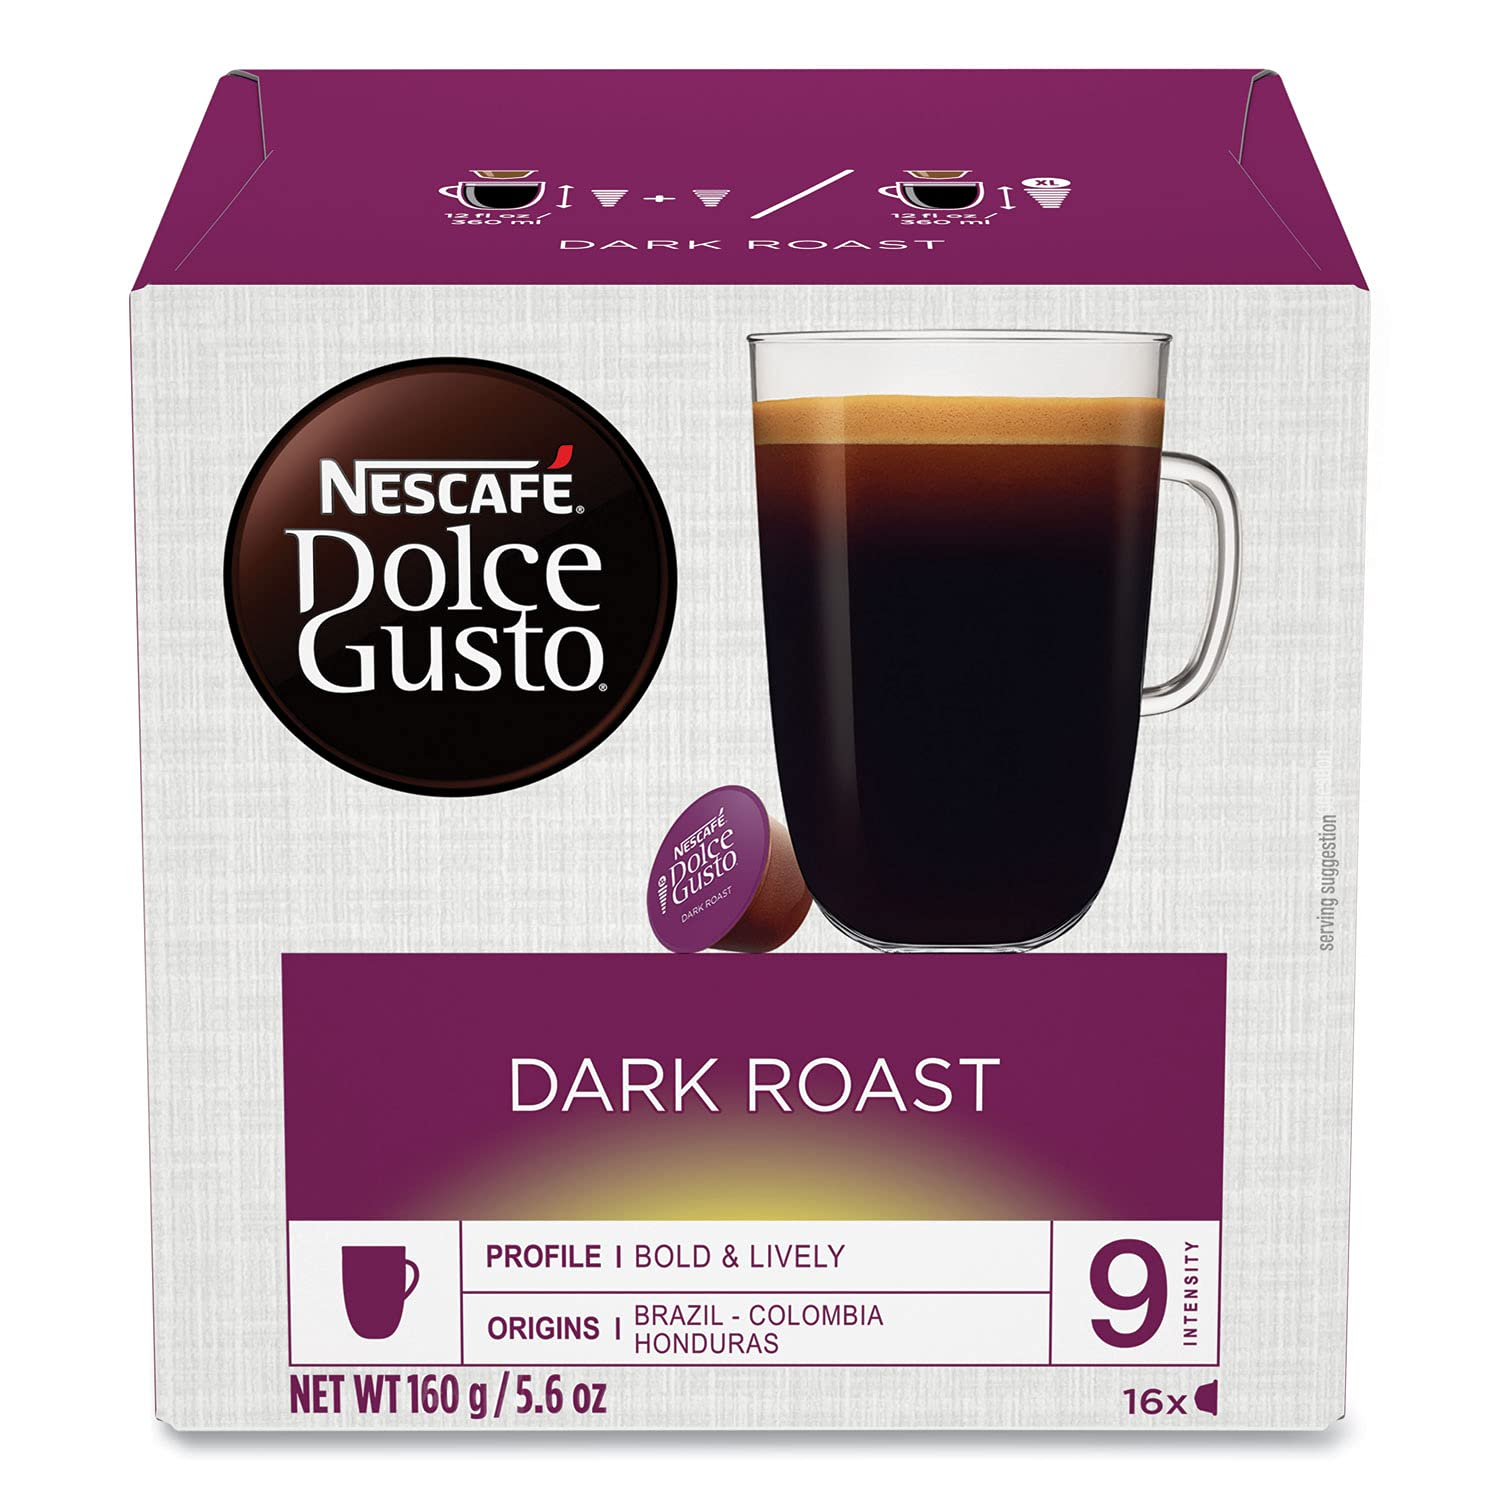 Nescafe Many popular brands Dolce Gusto Dark Roast Coffee Capsules Capsule low-pricing